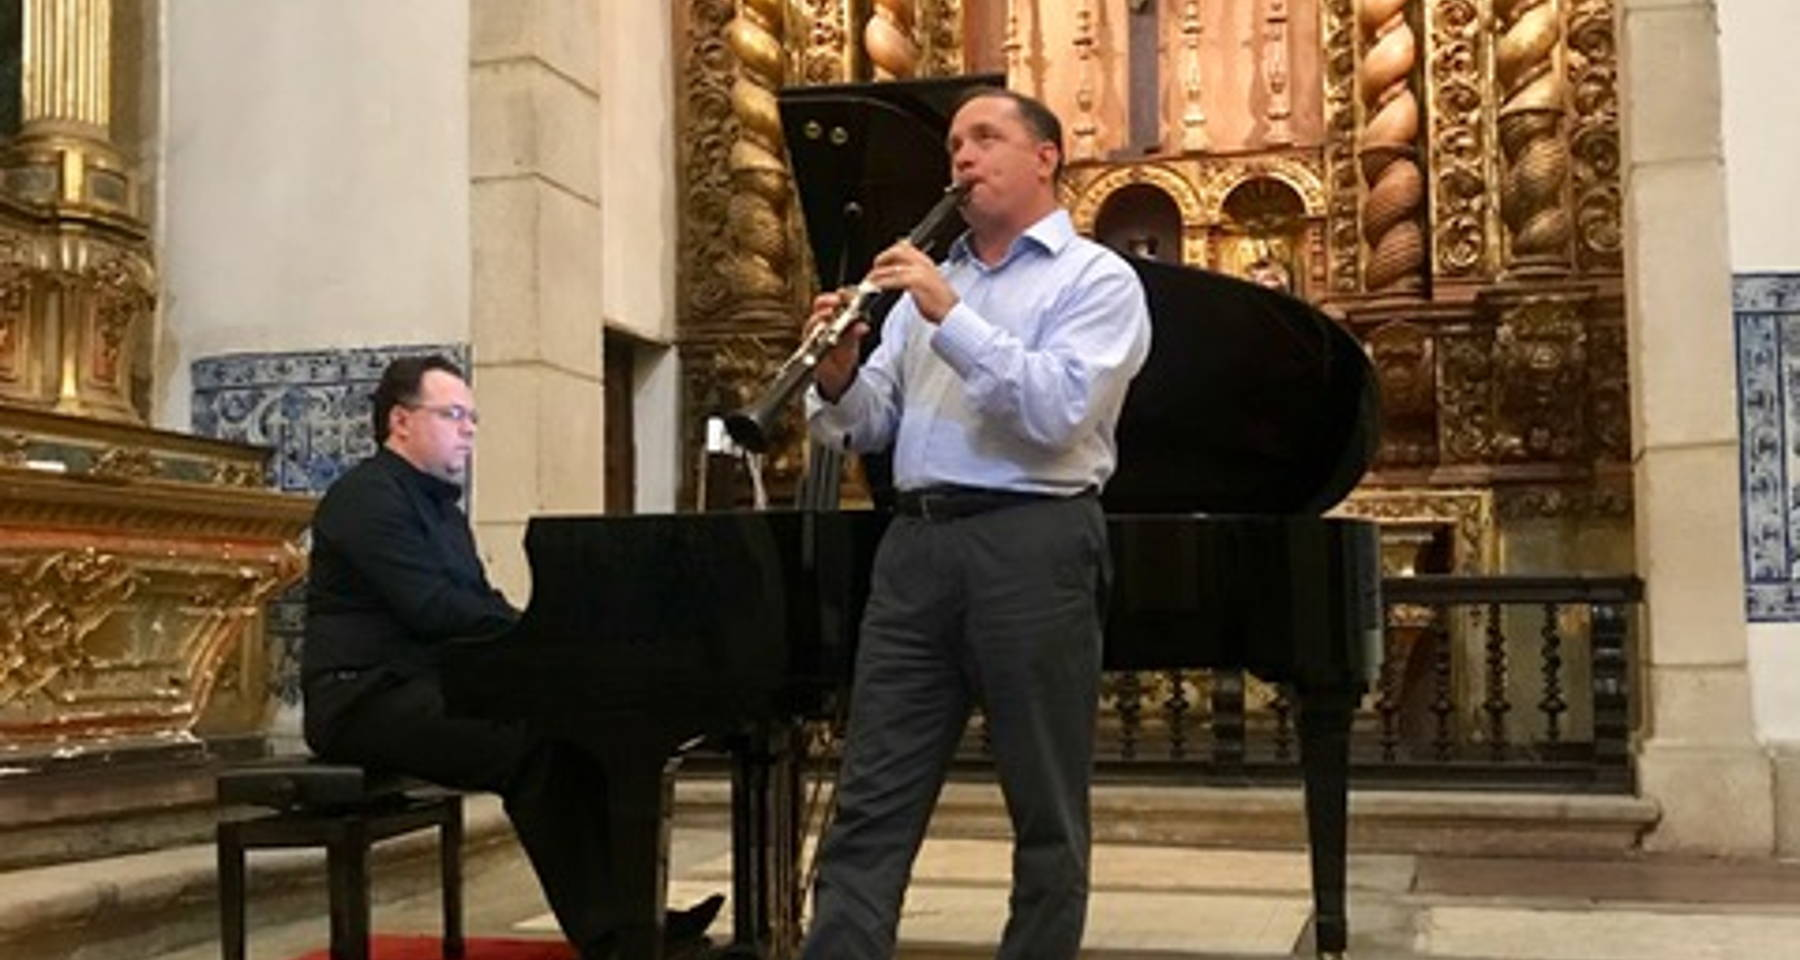 Redwine Casarotti Clarinet Piano Duo, performing Poulenc, Gershwin, Villa Lobos, and more!